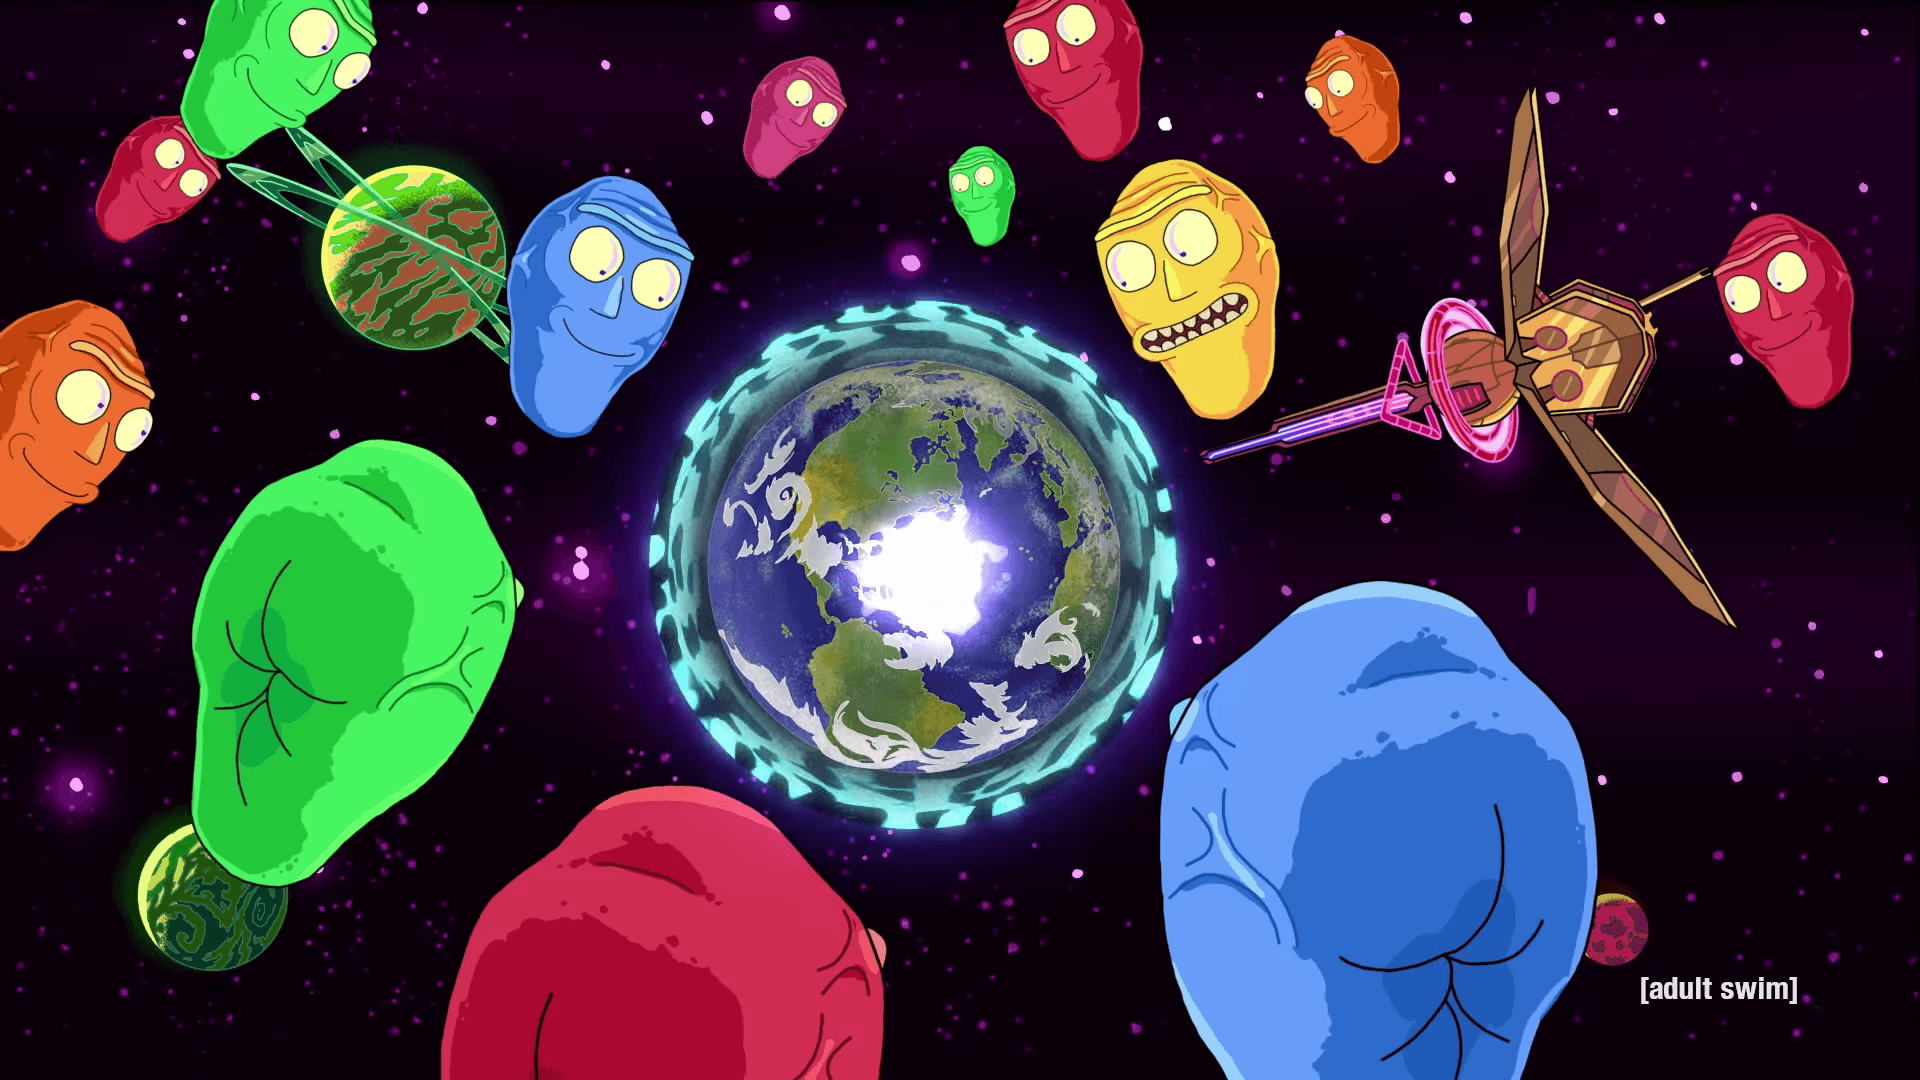 rick and morty 1920x1080 wallpaper, rick & morty wallpaper